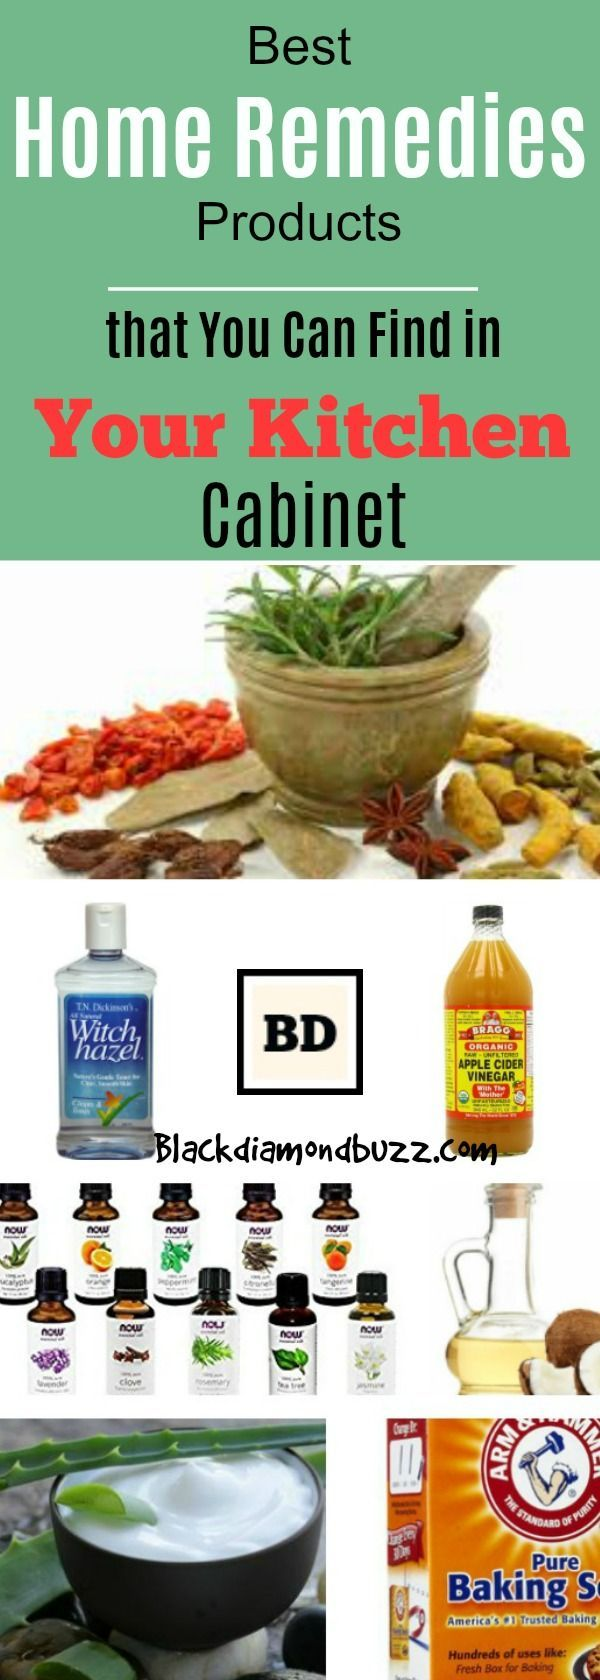 Best Home Remedies Products that You Can Find in Your Kitchen Cabinet for natural healing - Apple cidar vinegar , baking soda, aleo vera , coconut oil,ginger , witch hazel, hydrogen peroxide ,tea tree, lavender ,and turmeric. #homeremedies #health